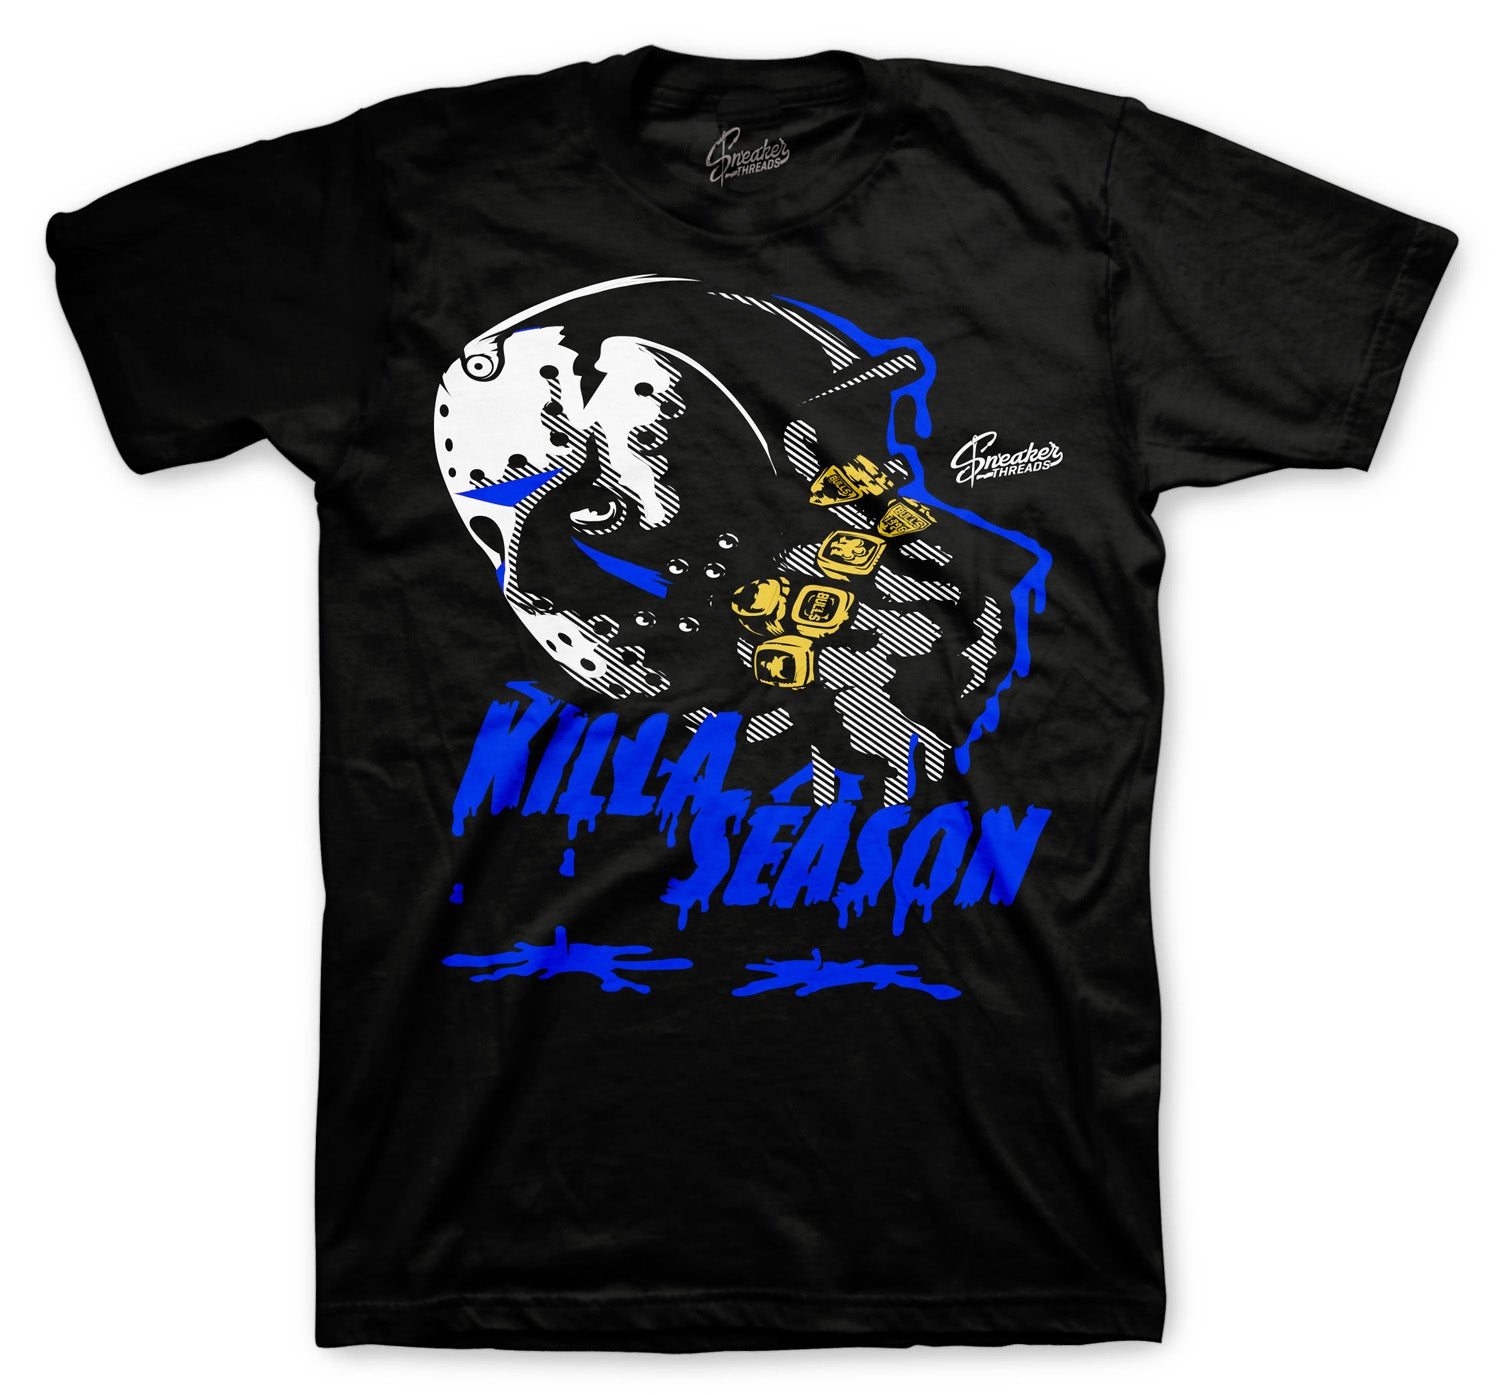 Jordan 12 Game Royal sneakers matching Jordan 12 game royal shirt collection